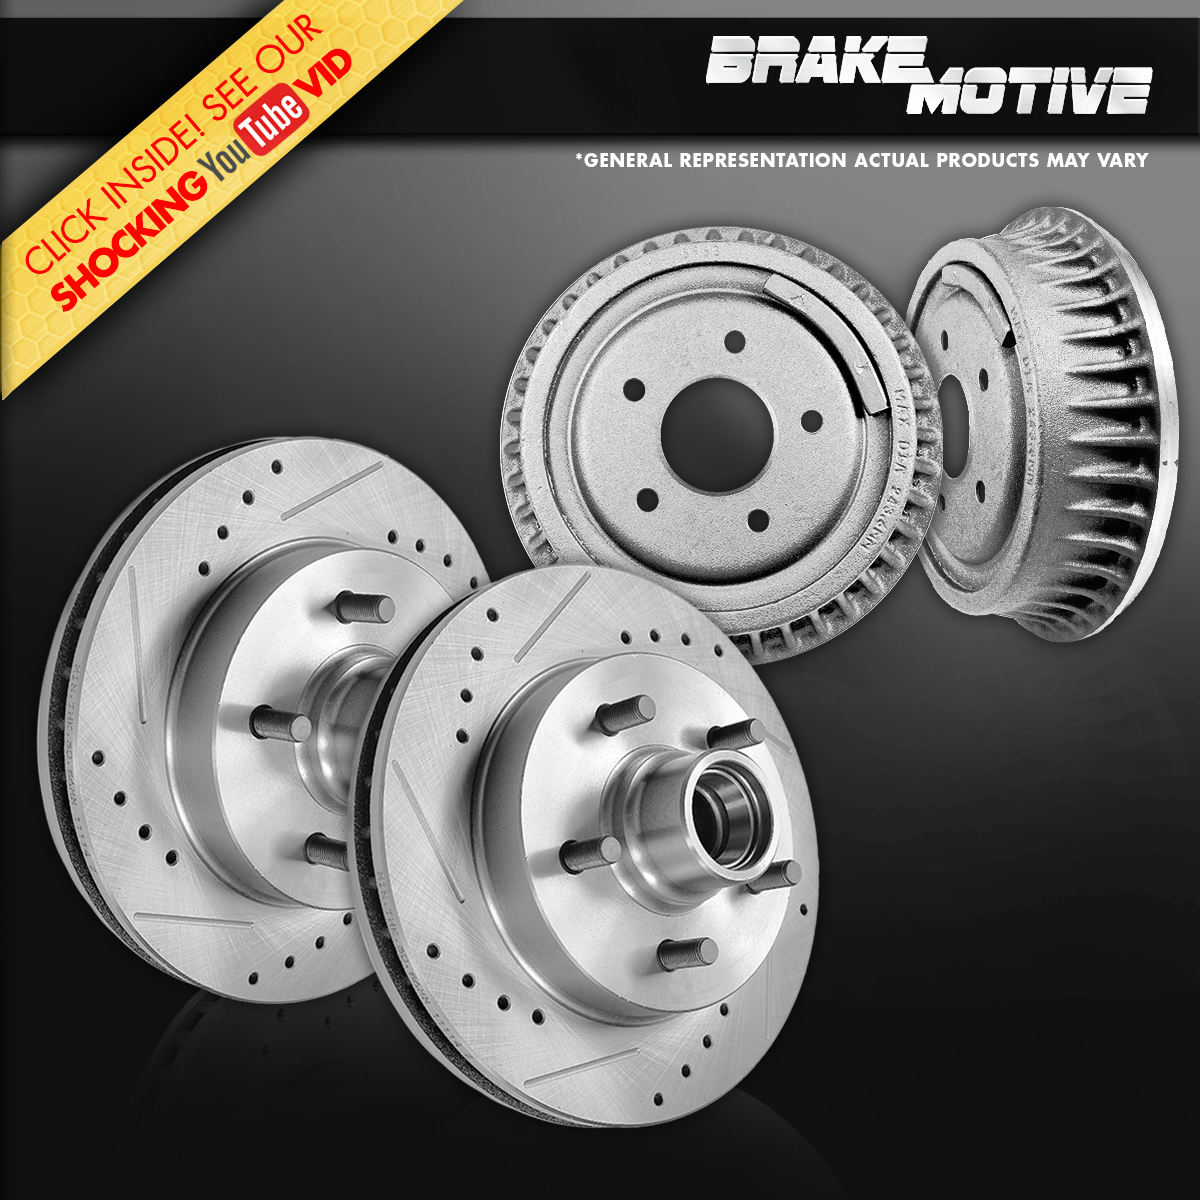 Front brake rotors rear brake drums kit 97 98 99 1997 for 1998 ford f150 rear window replacement